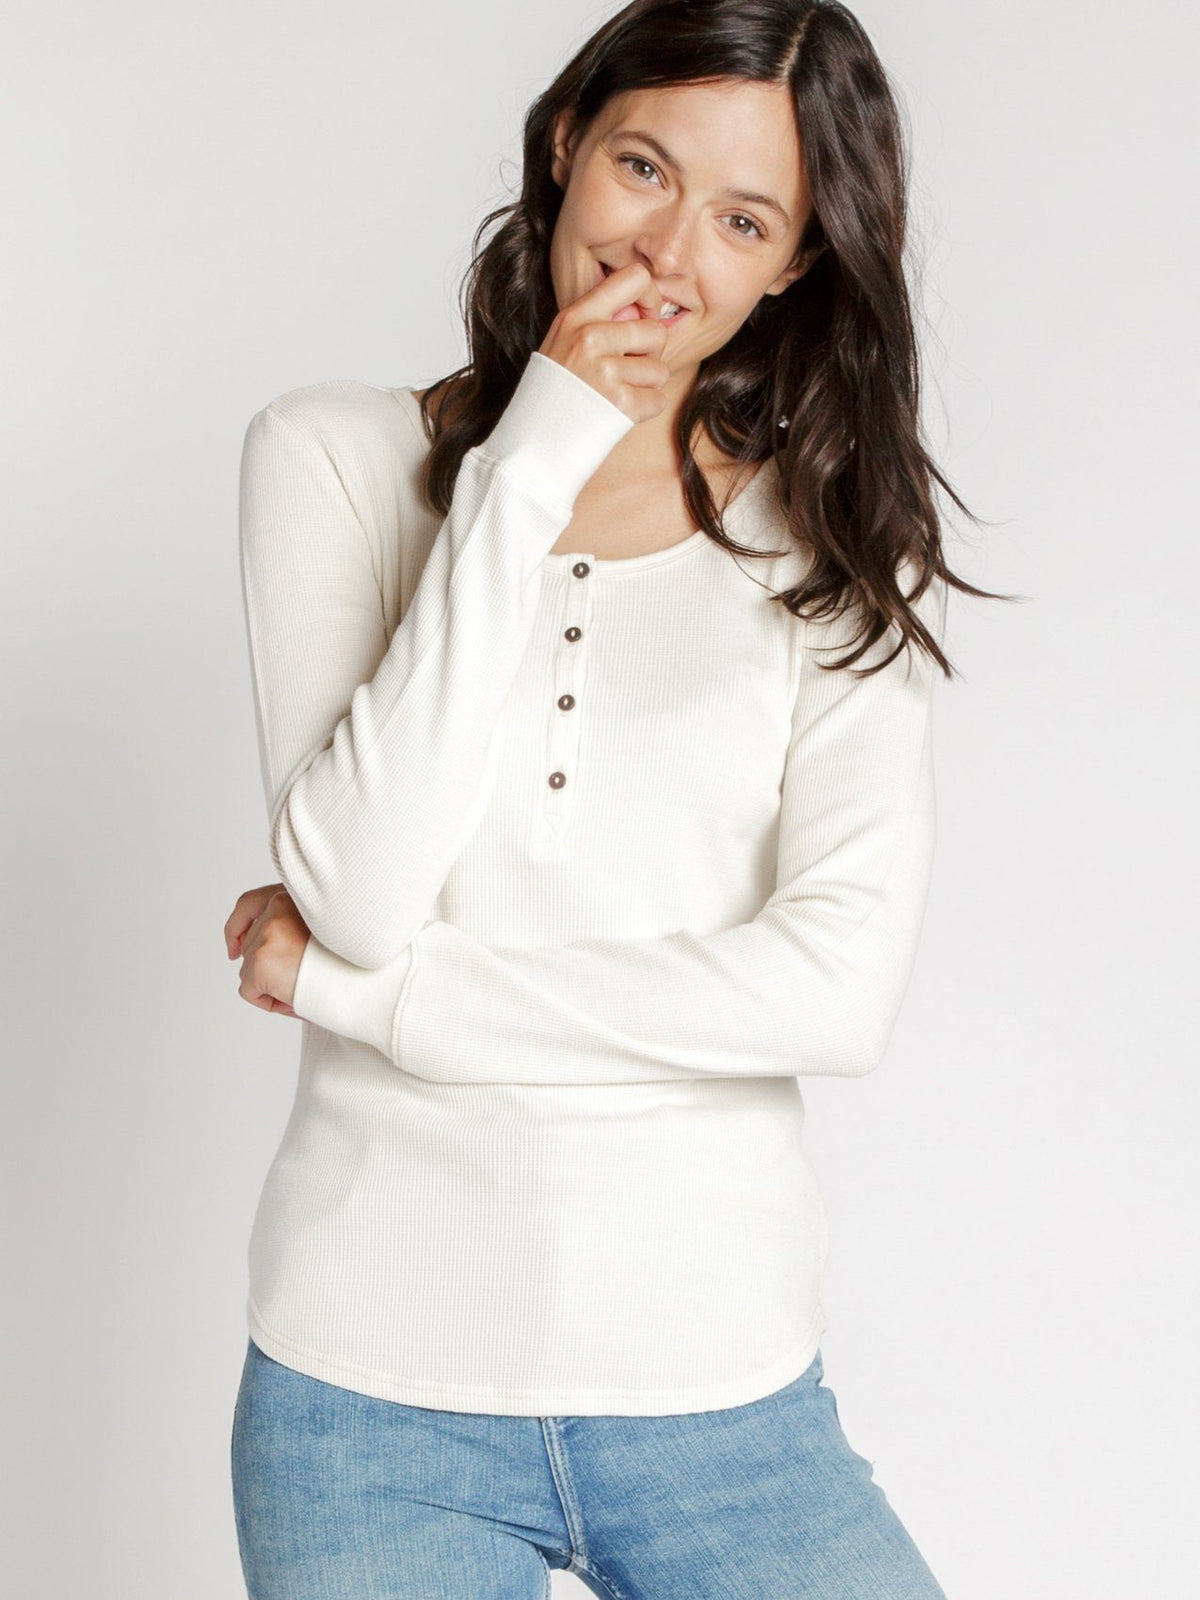 Maeve Long Sleeve Top Shirts Thread & Supply IVORY S